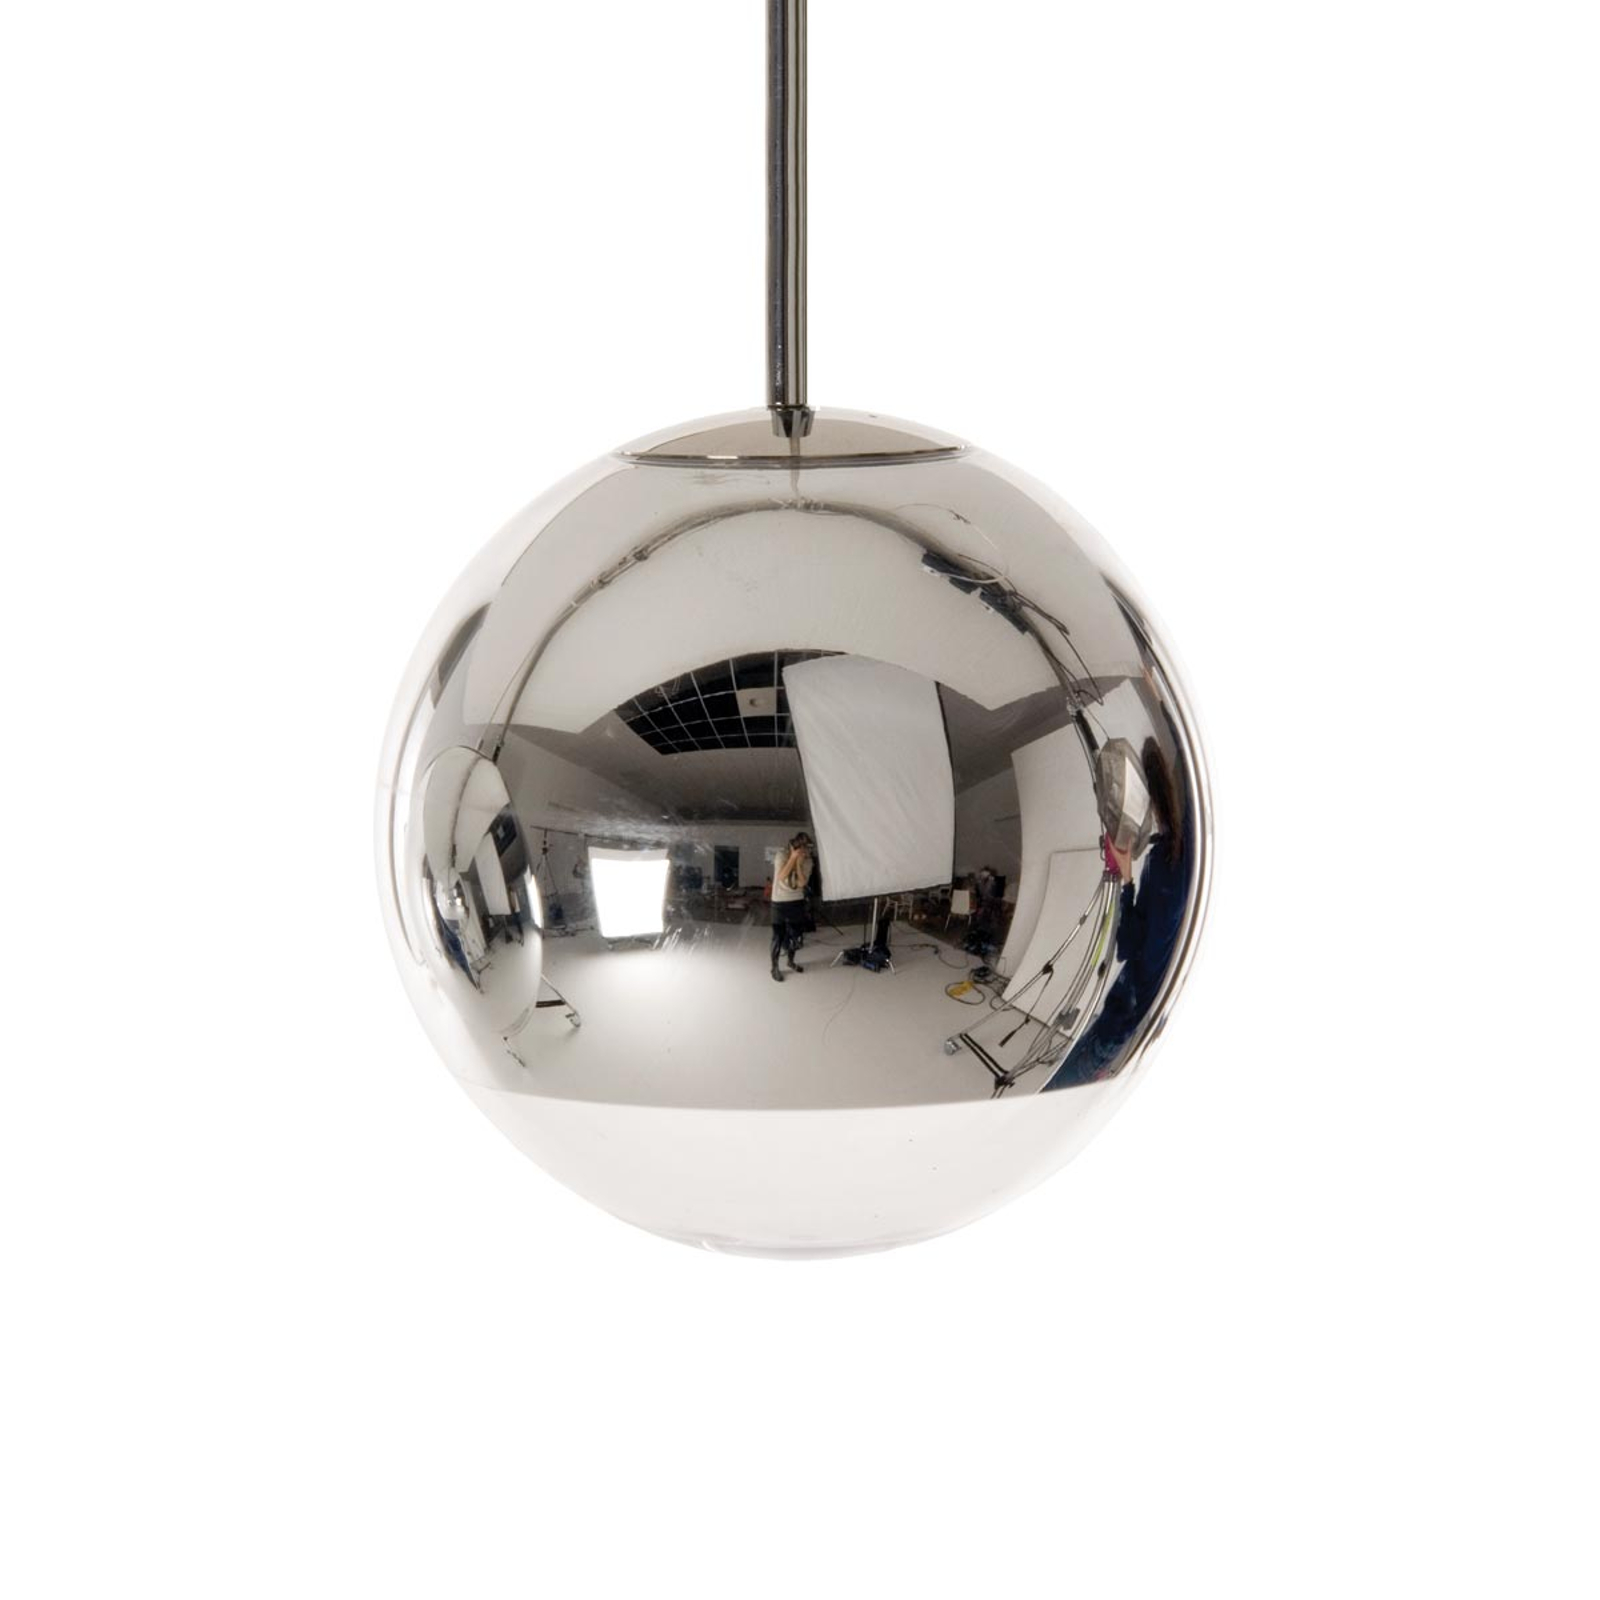 Tom Dixon Mirror Ball - Hängeleuchte chrom, 25 cm